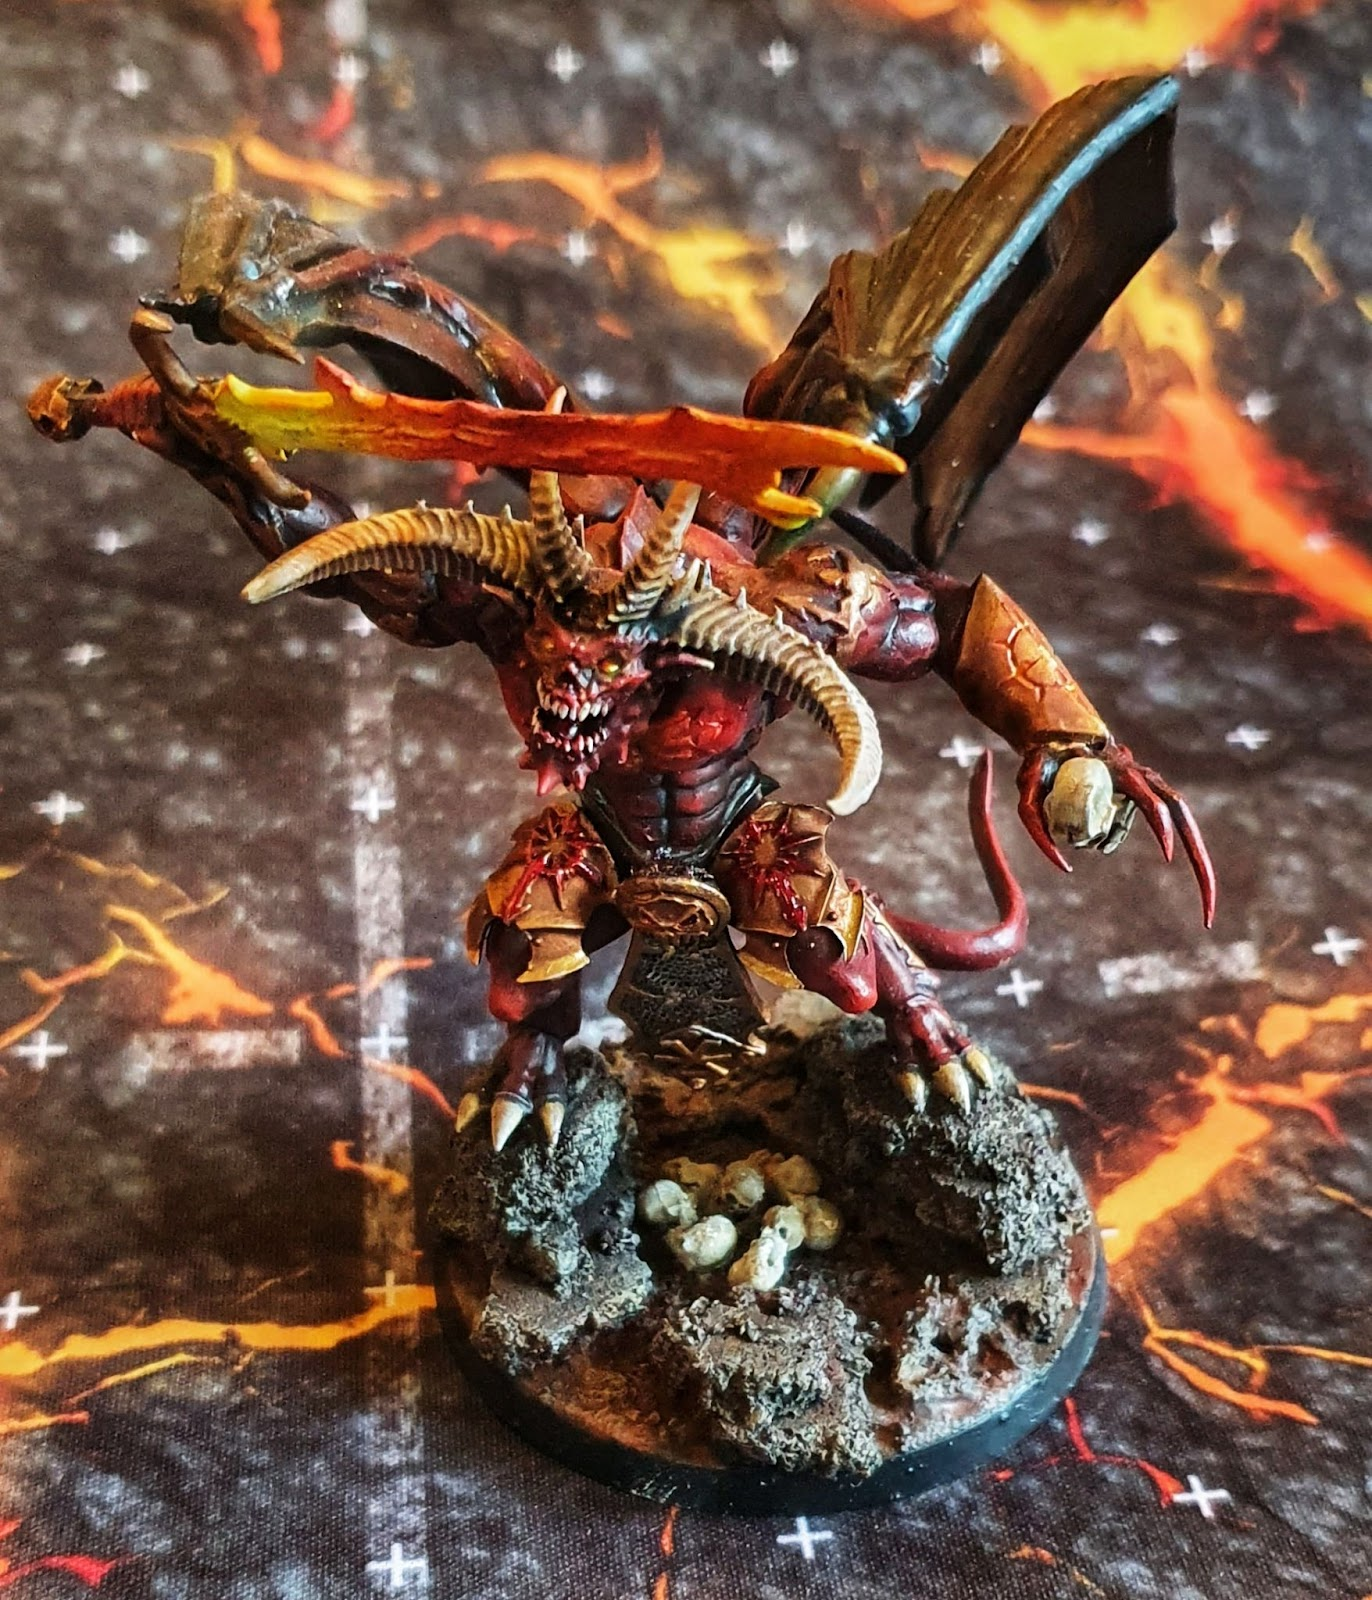 Demon Prince of Khorne model, holding a skull in one hand, with a lava sword and gold armour.